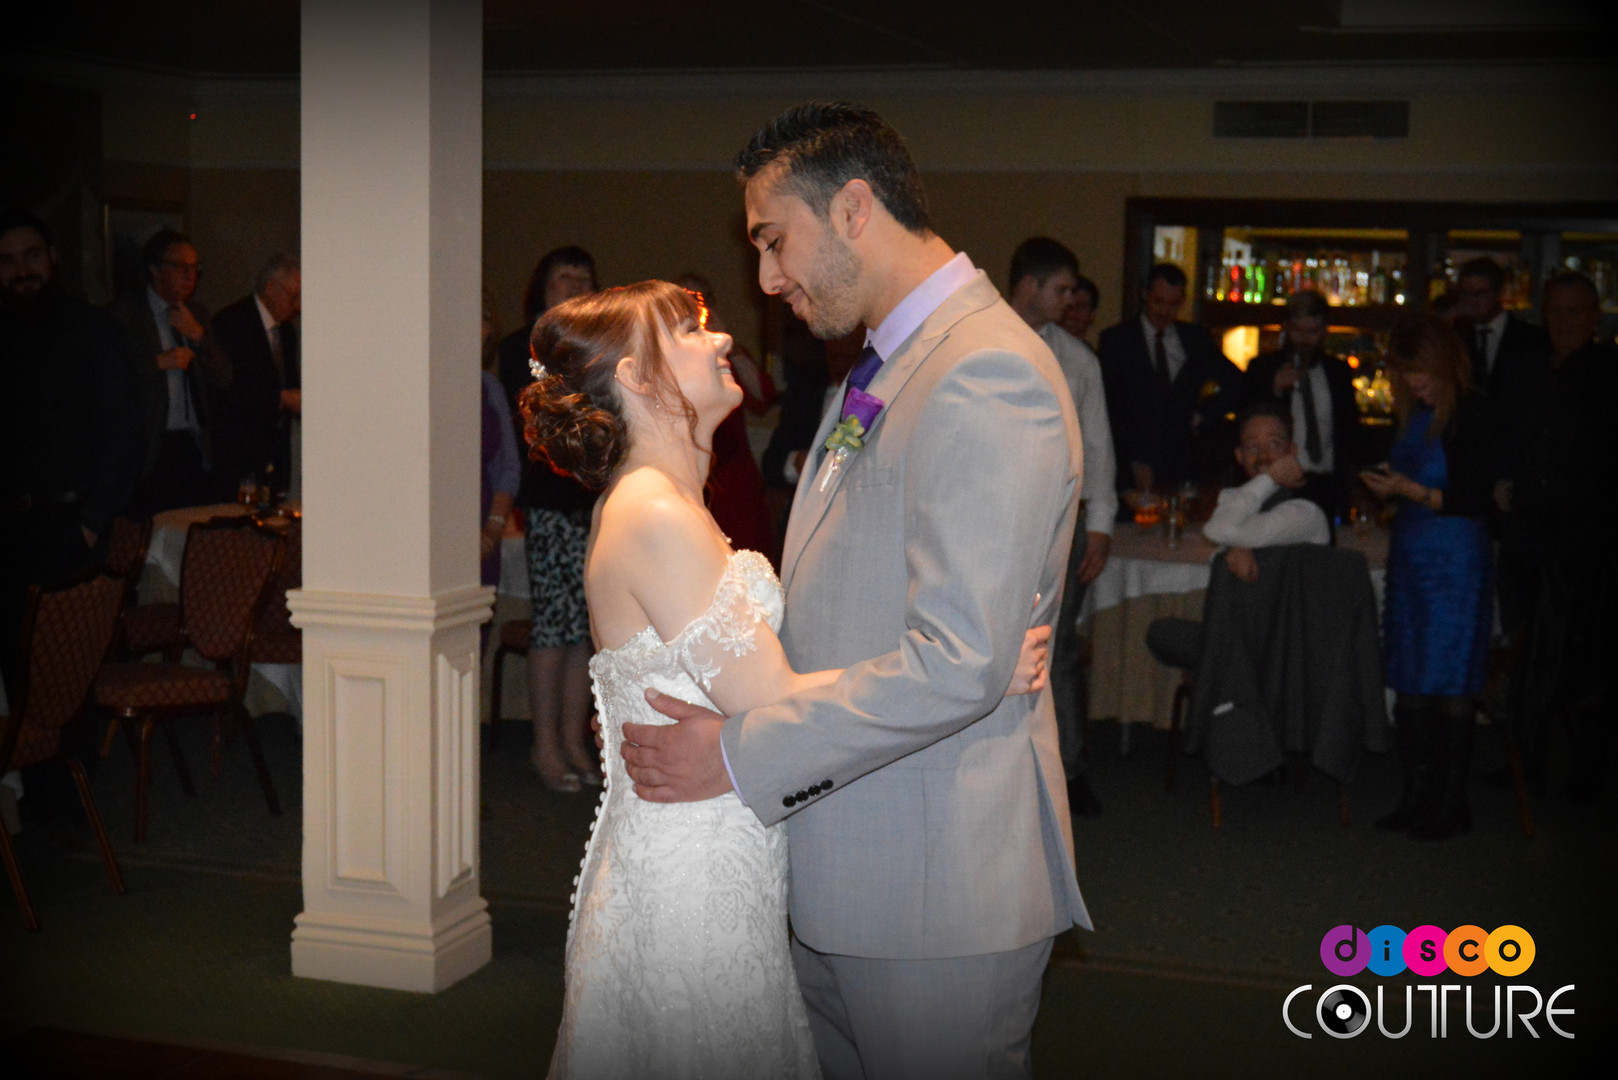 Loving couple enjoy first dance